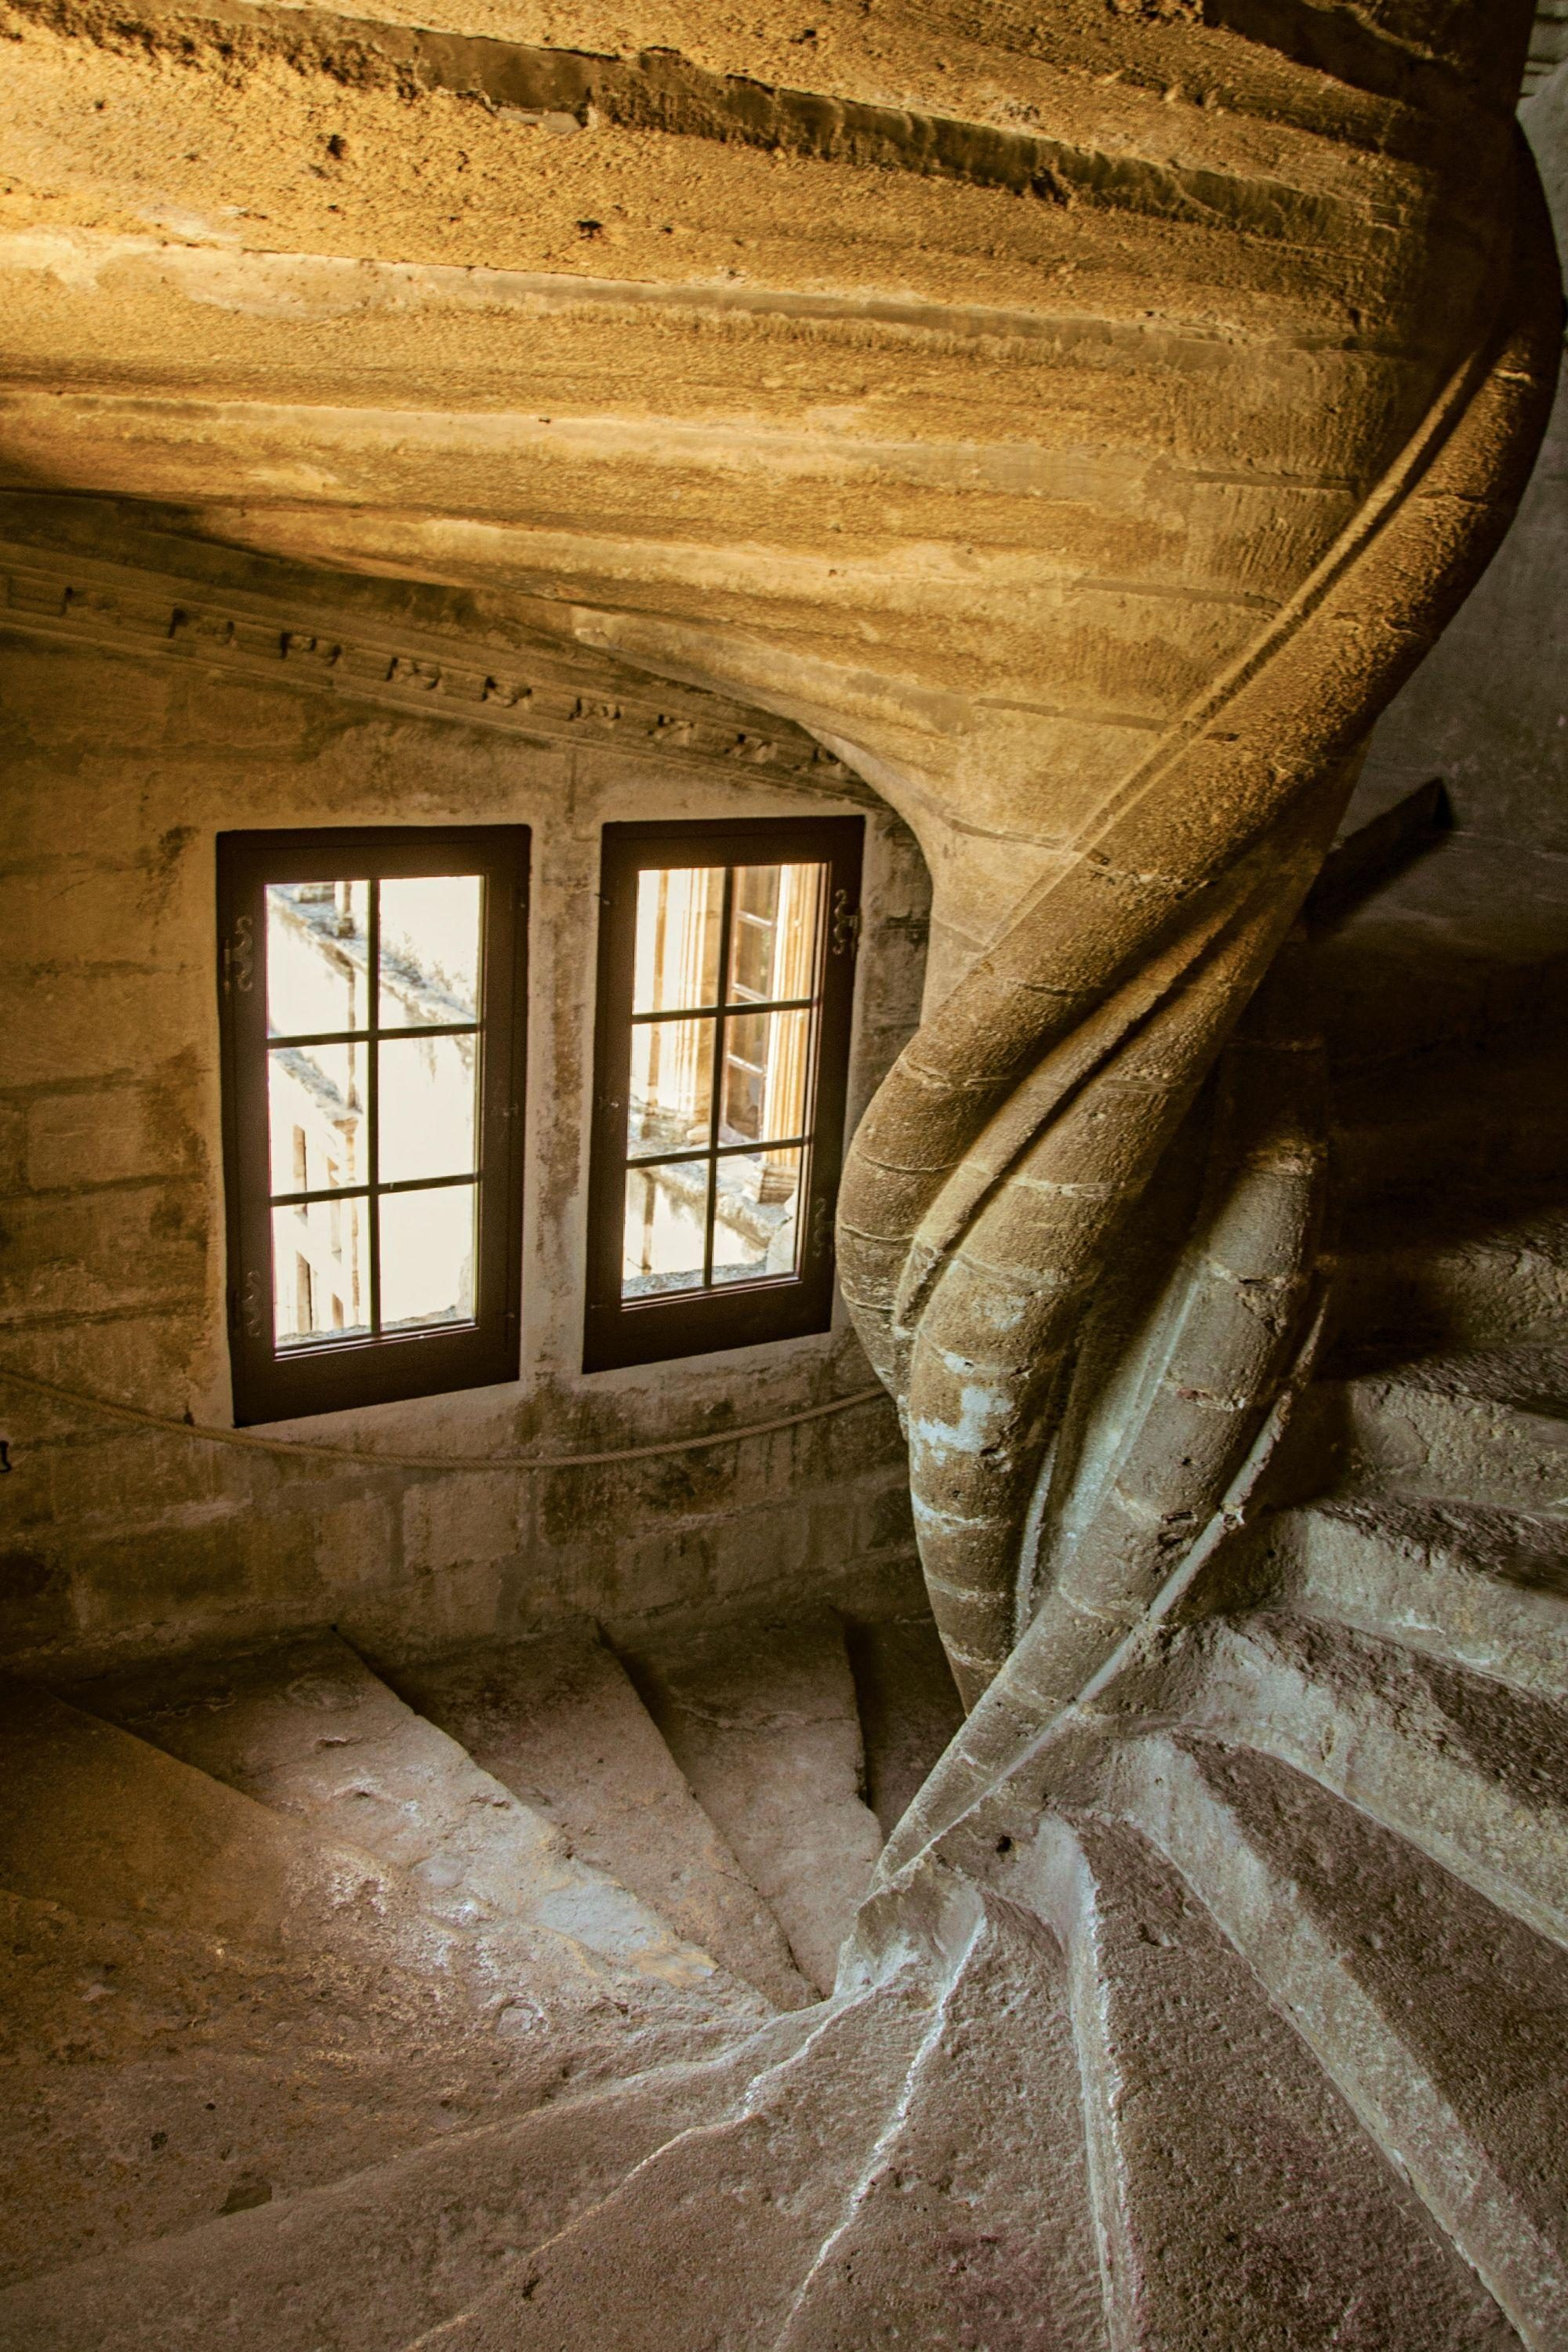 History of Spiral Staircase, image Lourmarin Castle